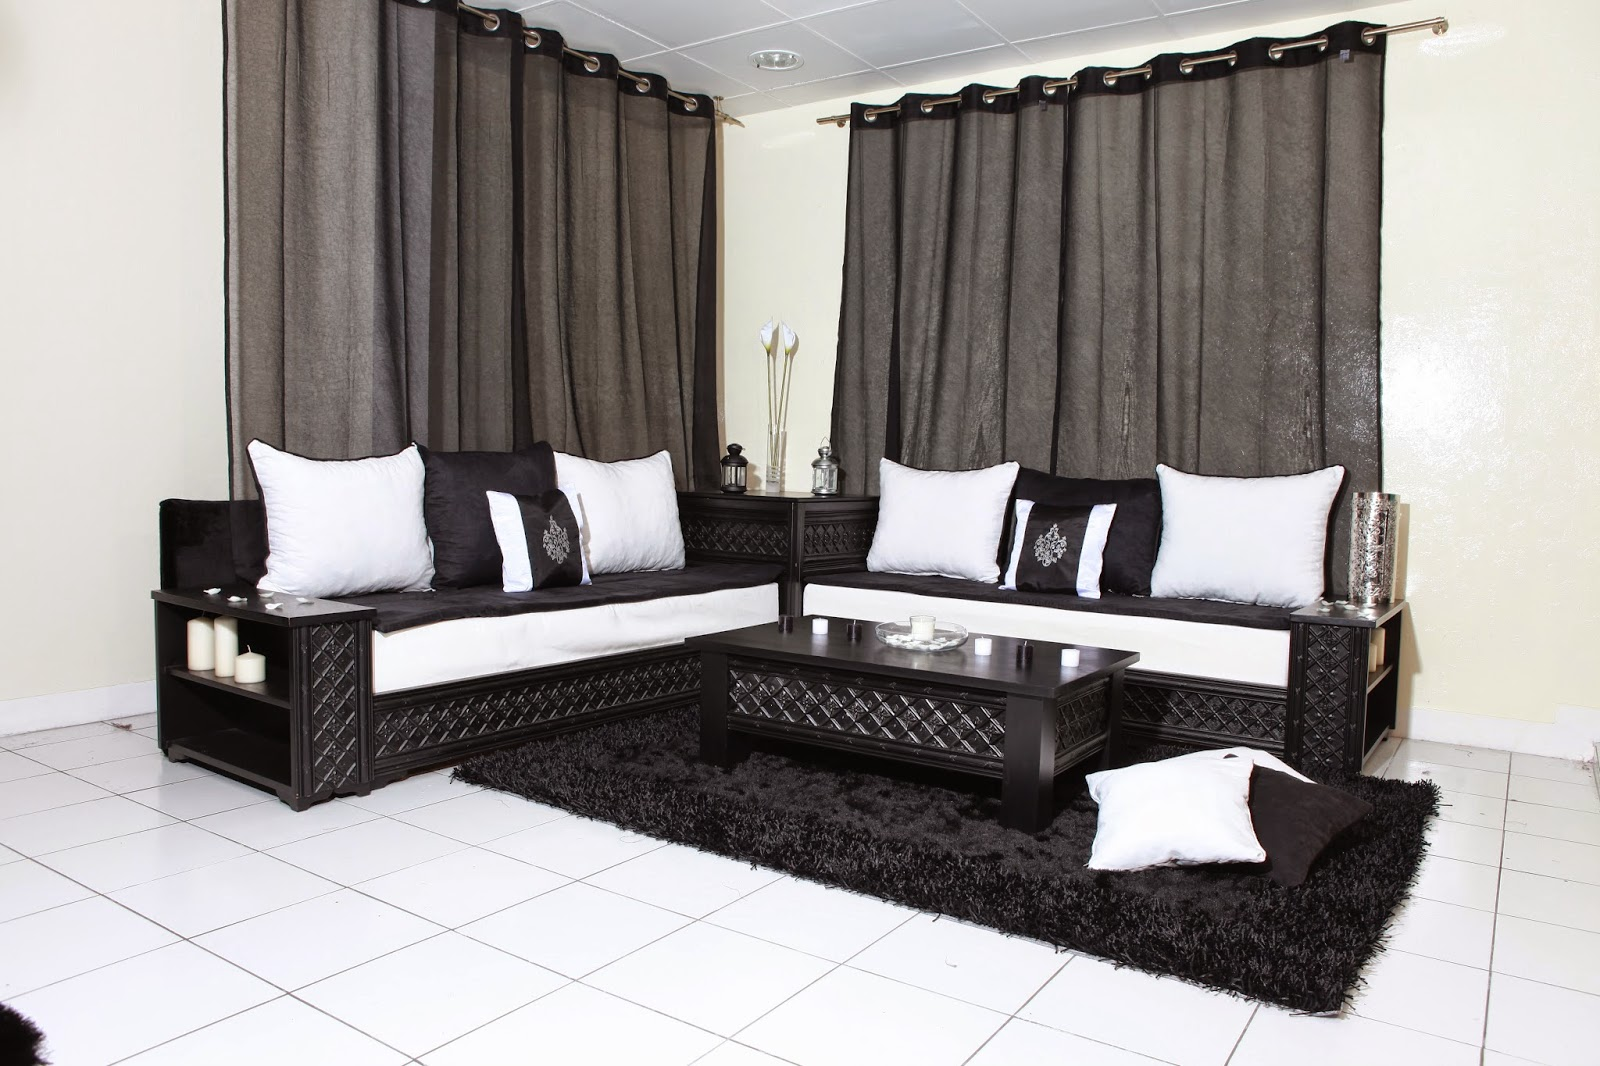 salon marocain moderne enfrance avec des id es int ressantes pour la conception. Black Bedroom Furniture Sets. Home Design Ideas